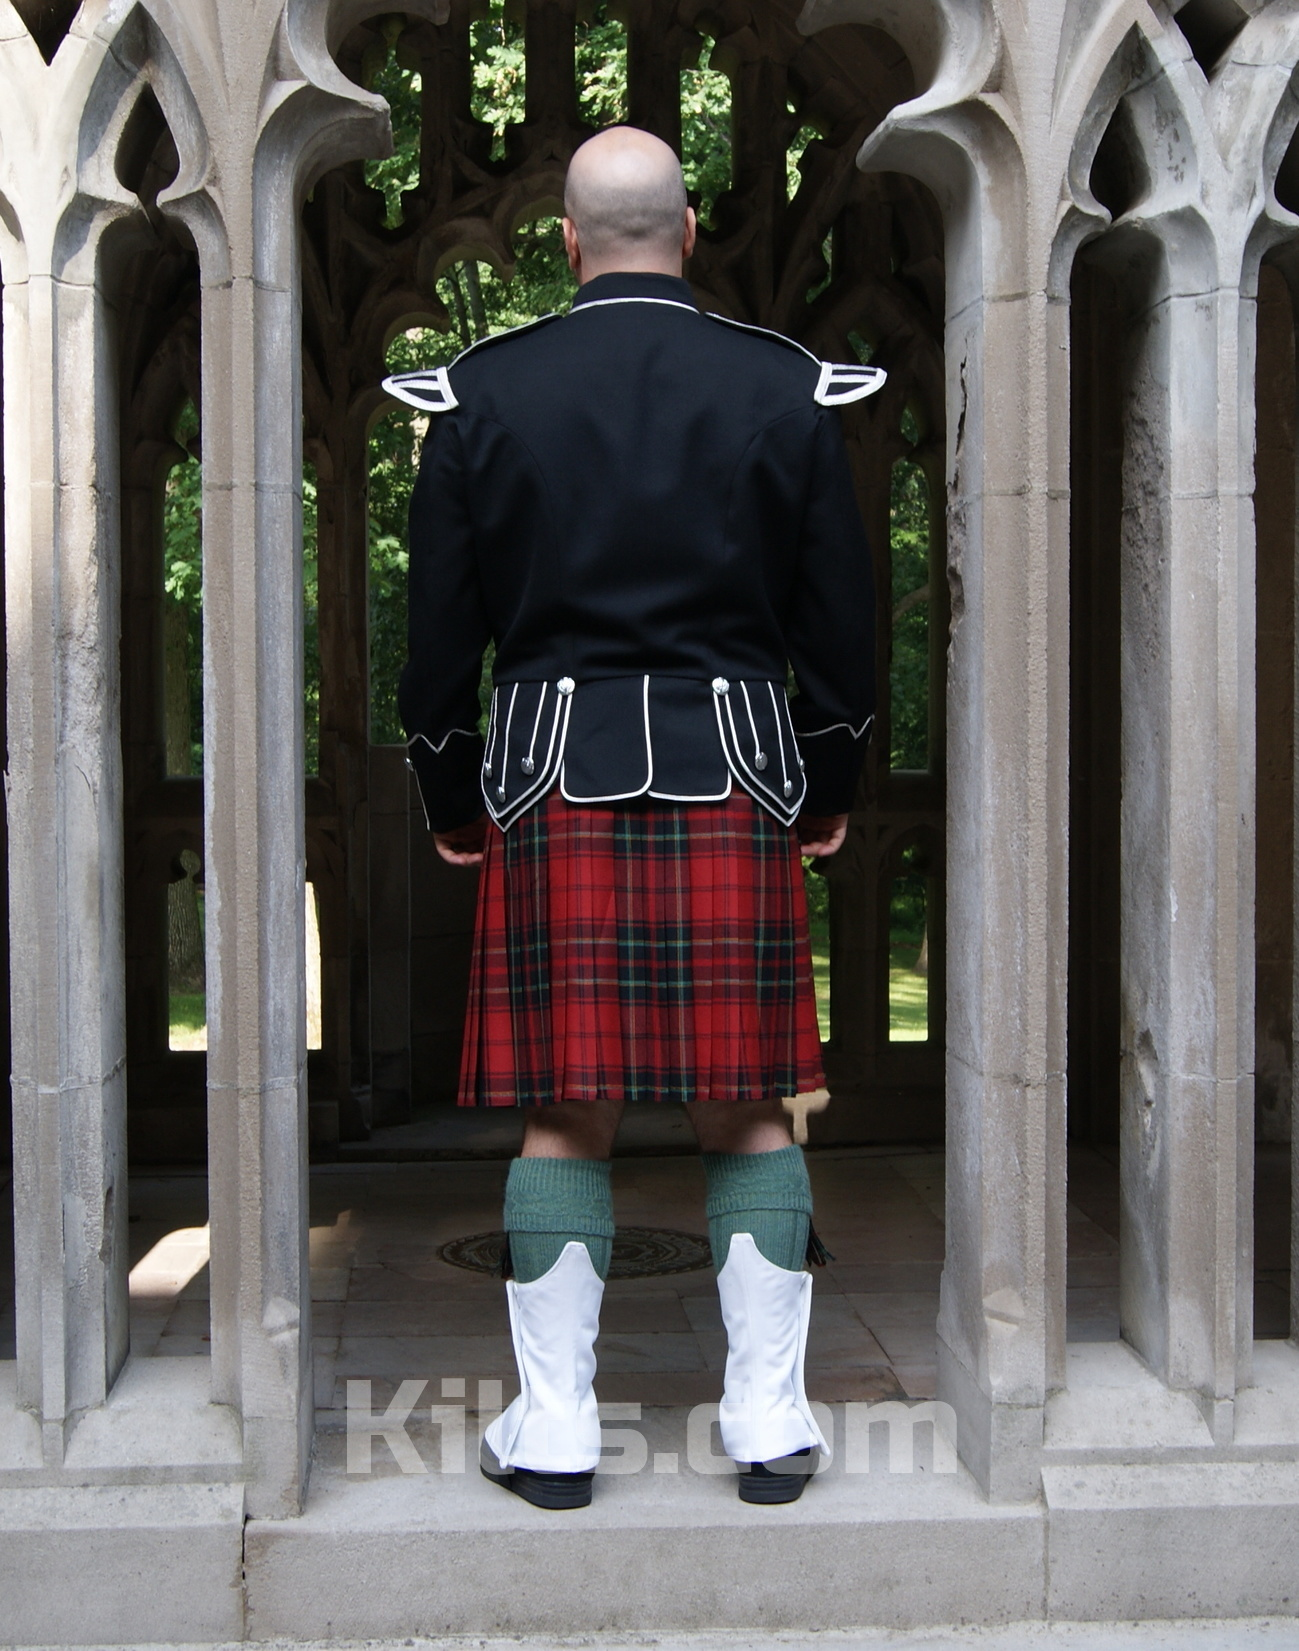 Do you need a kilt doublet? Check out our doublet jacket for sale.